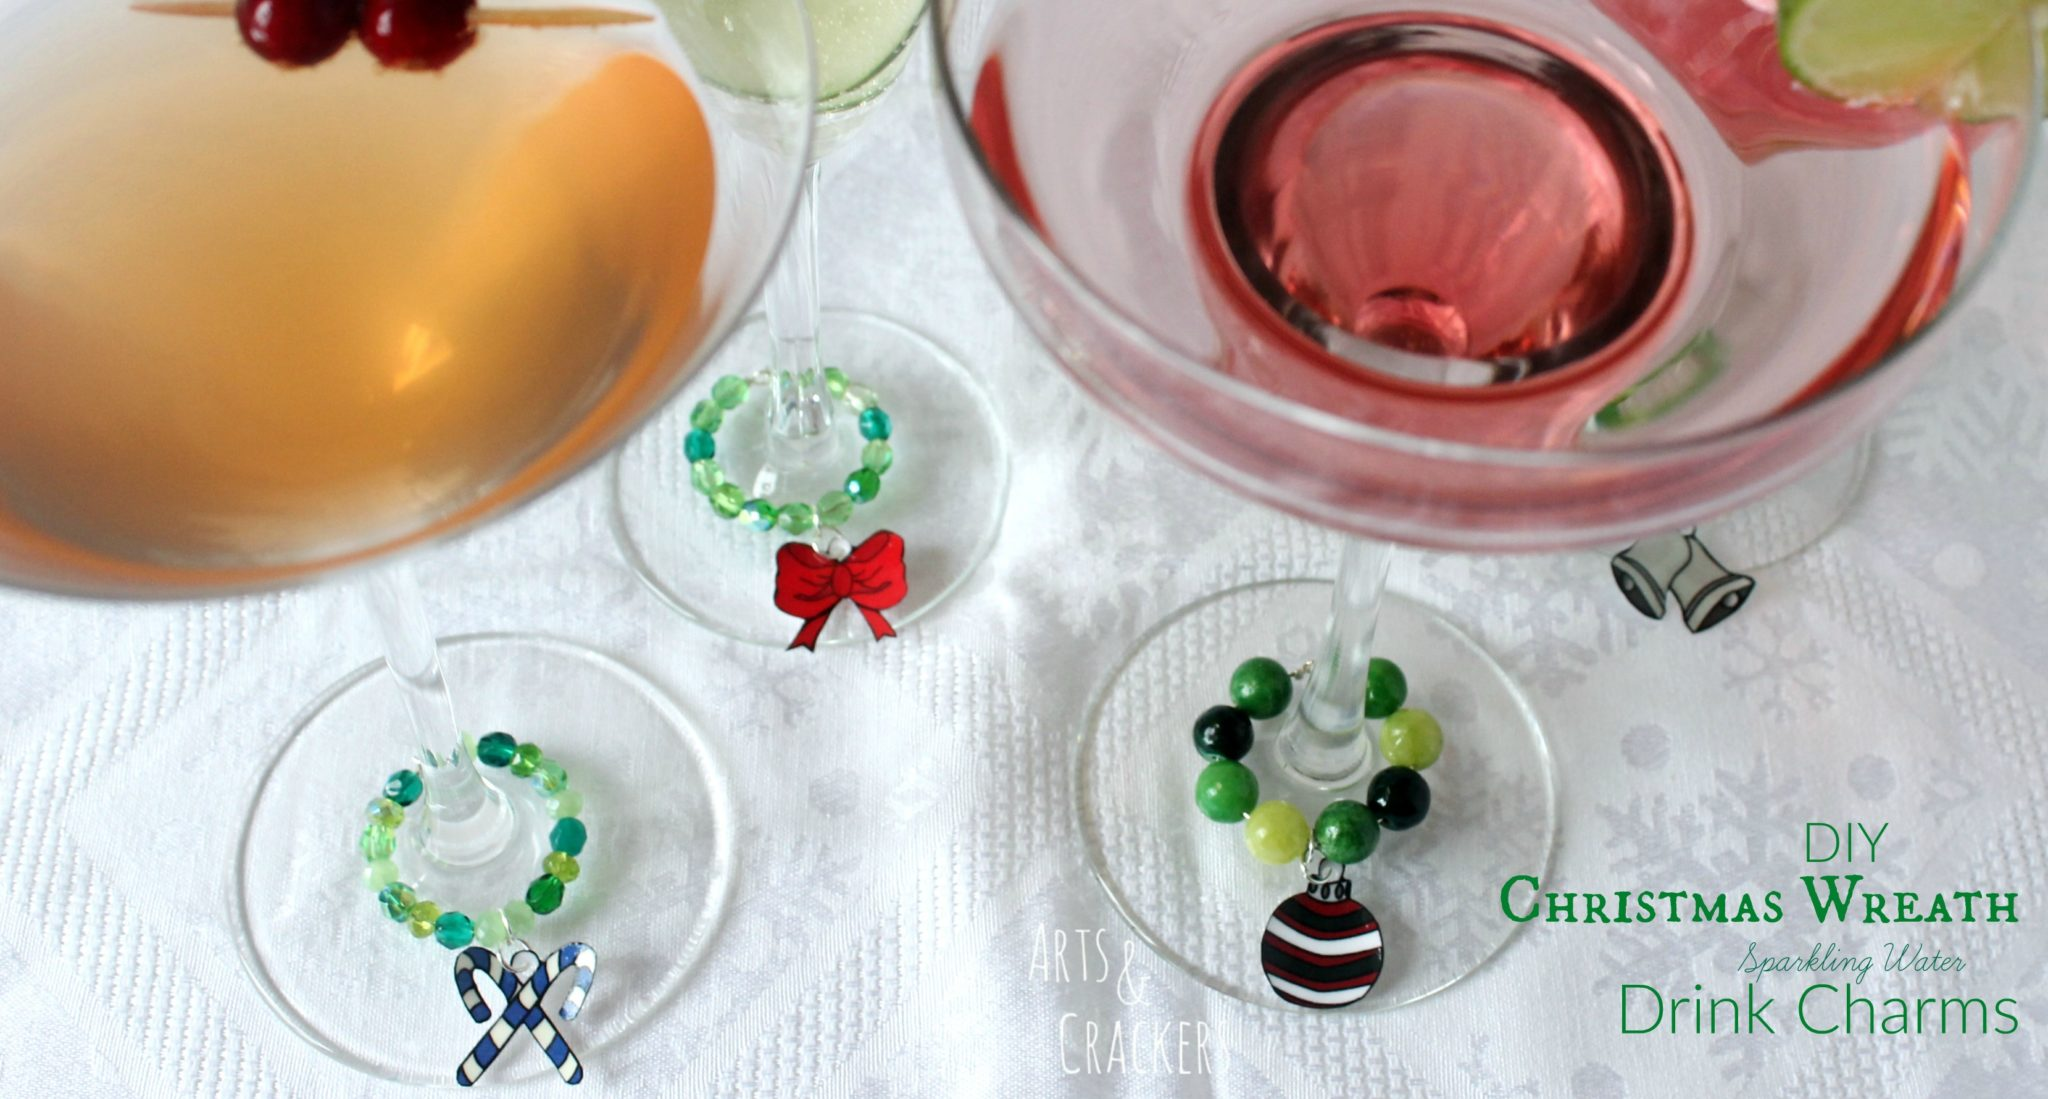 Christmas Wreath Drink Charms for Sparkling Water